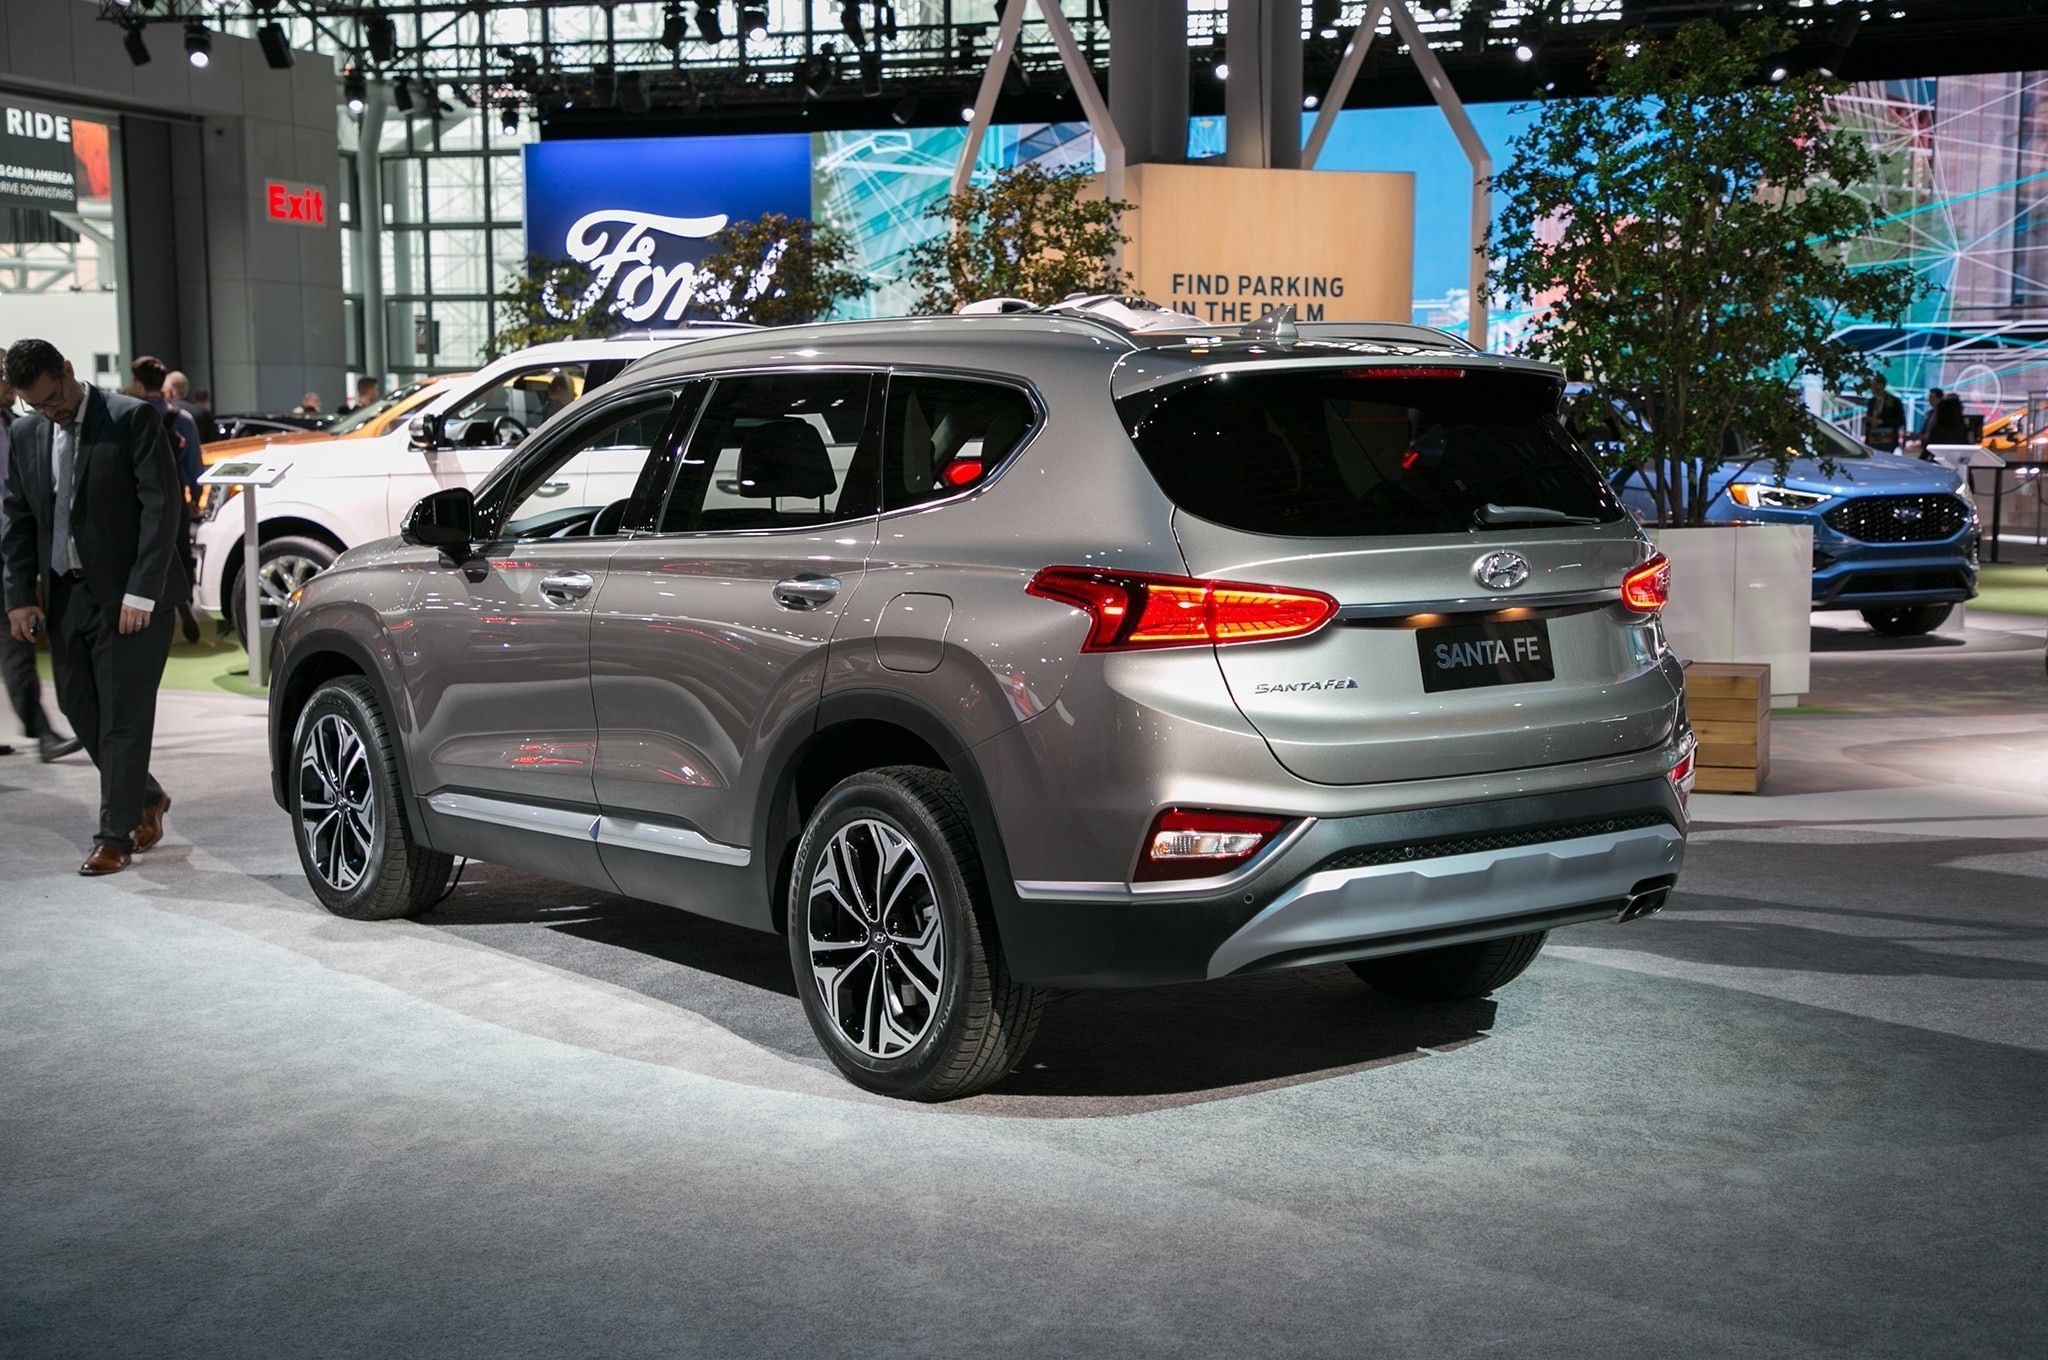 hyundai santa fe limited 2019 exterior and interior review all car rh pinterest com